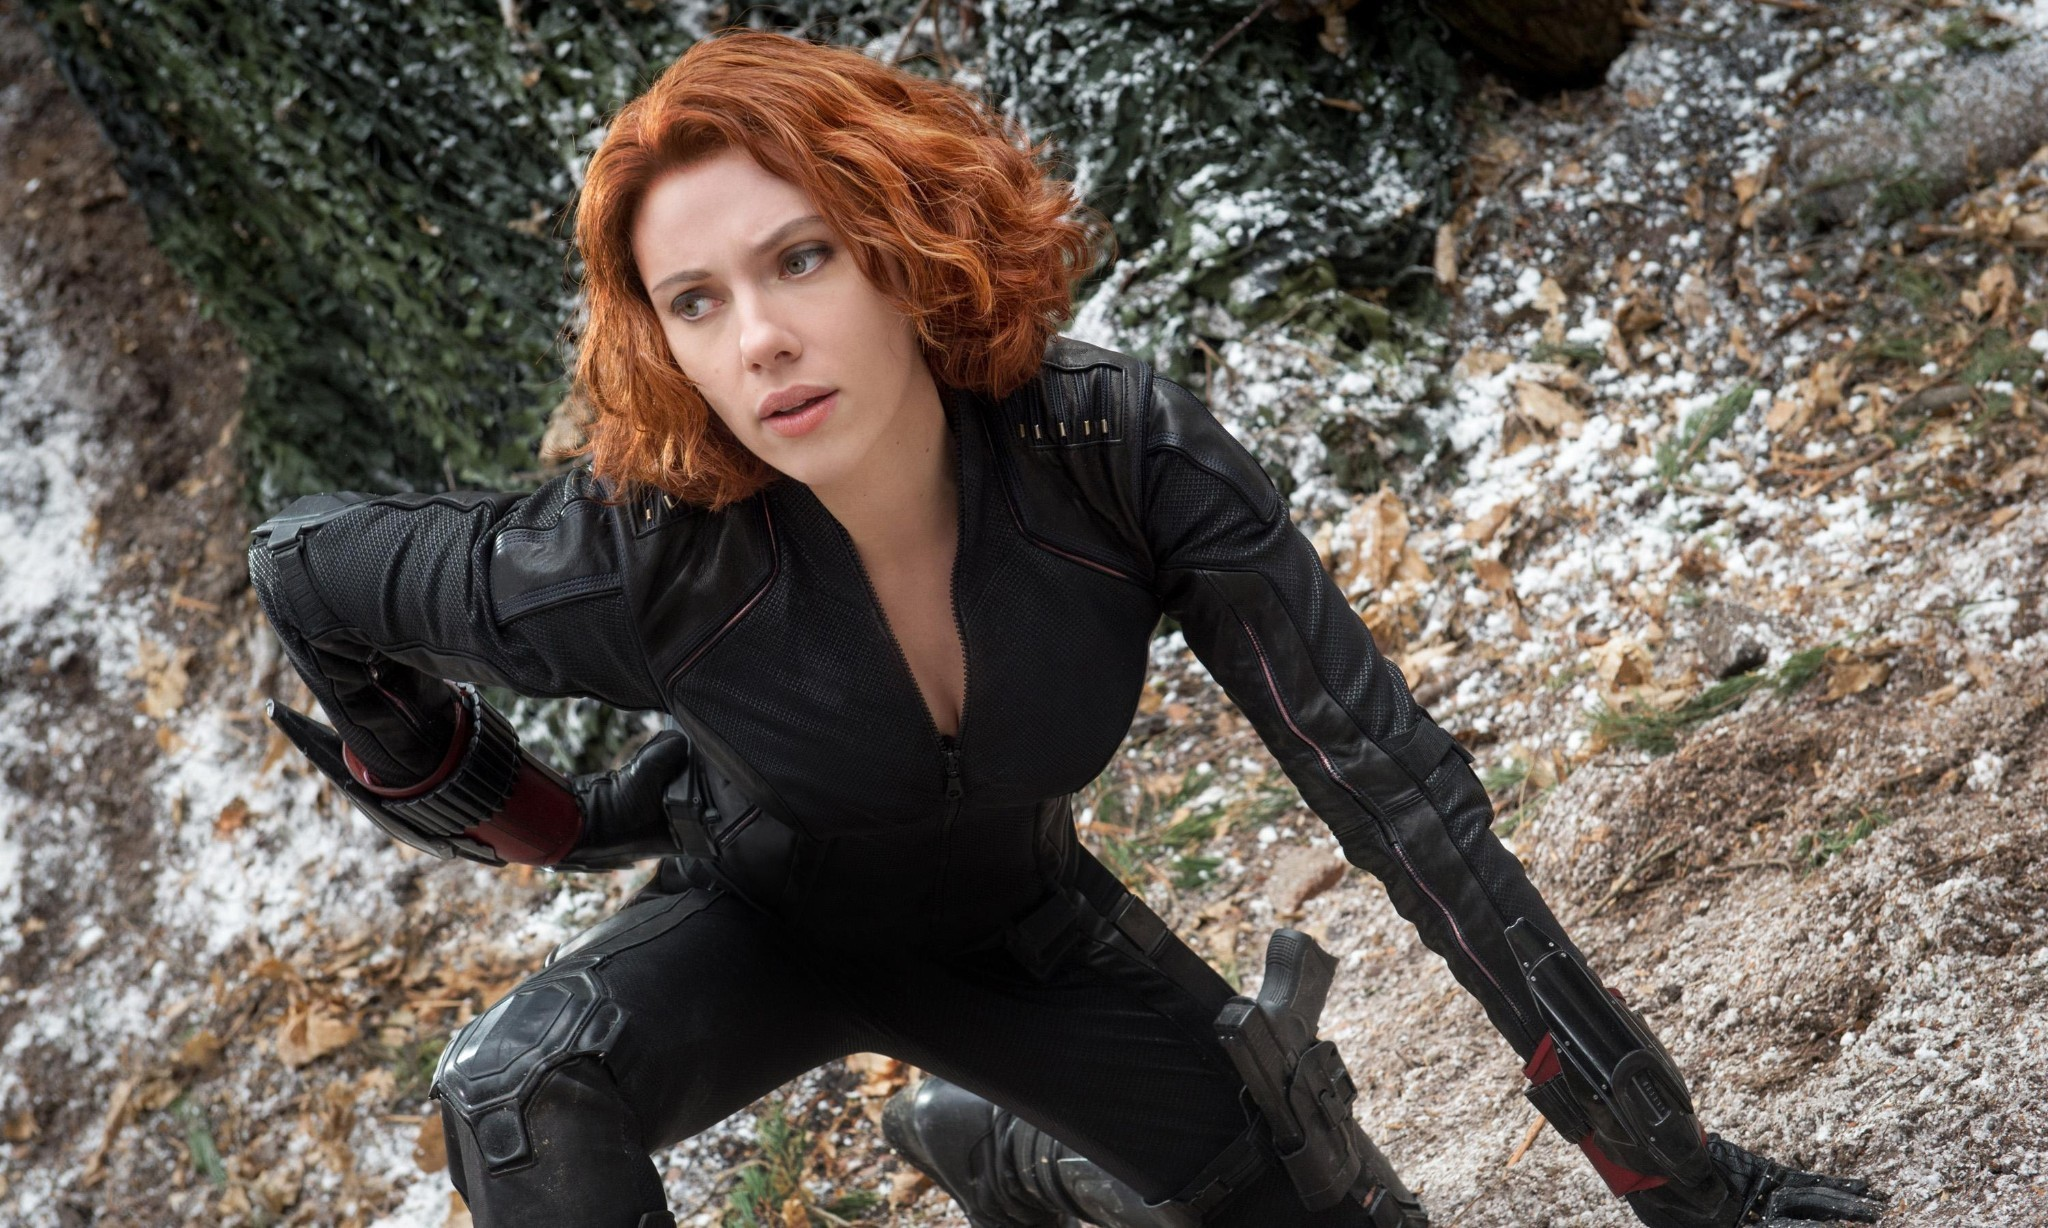 Black Widow movie gets firm commitment from Marvel boss